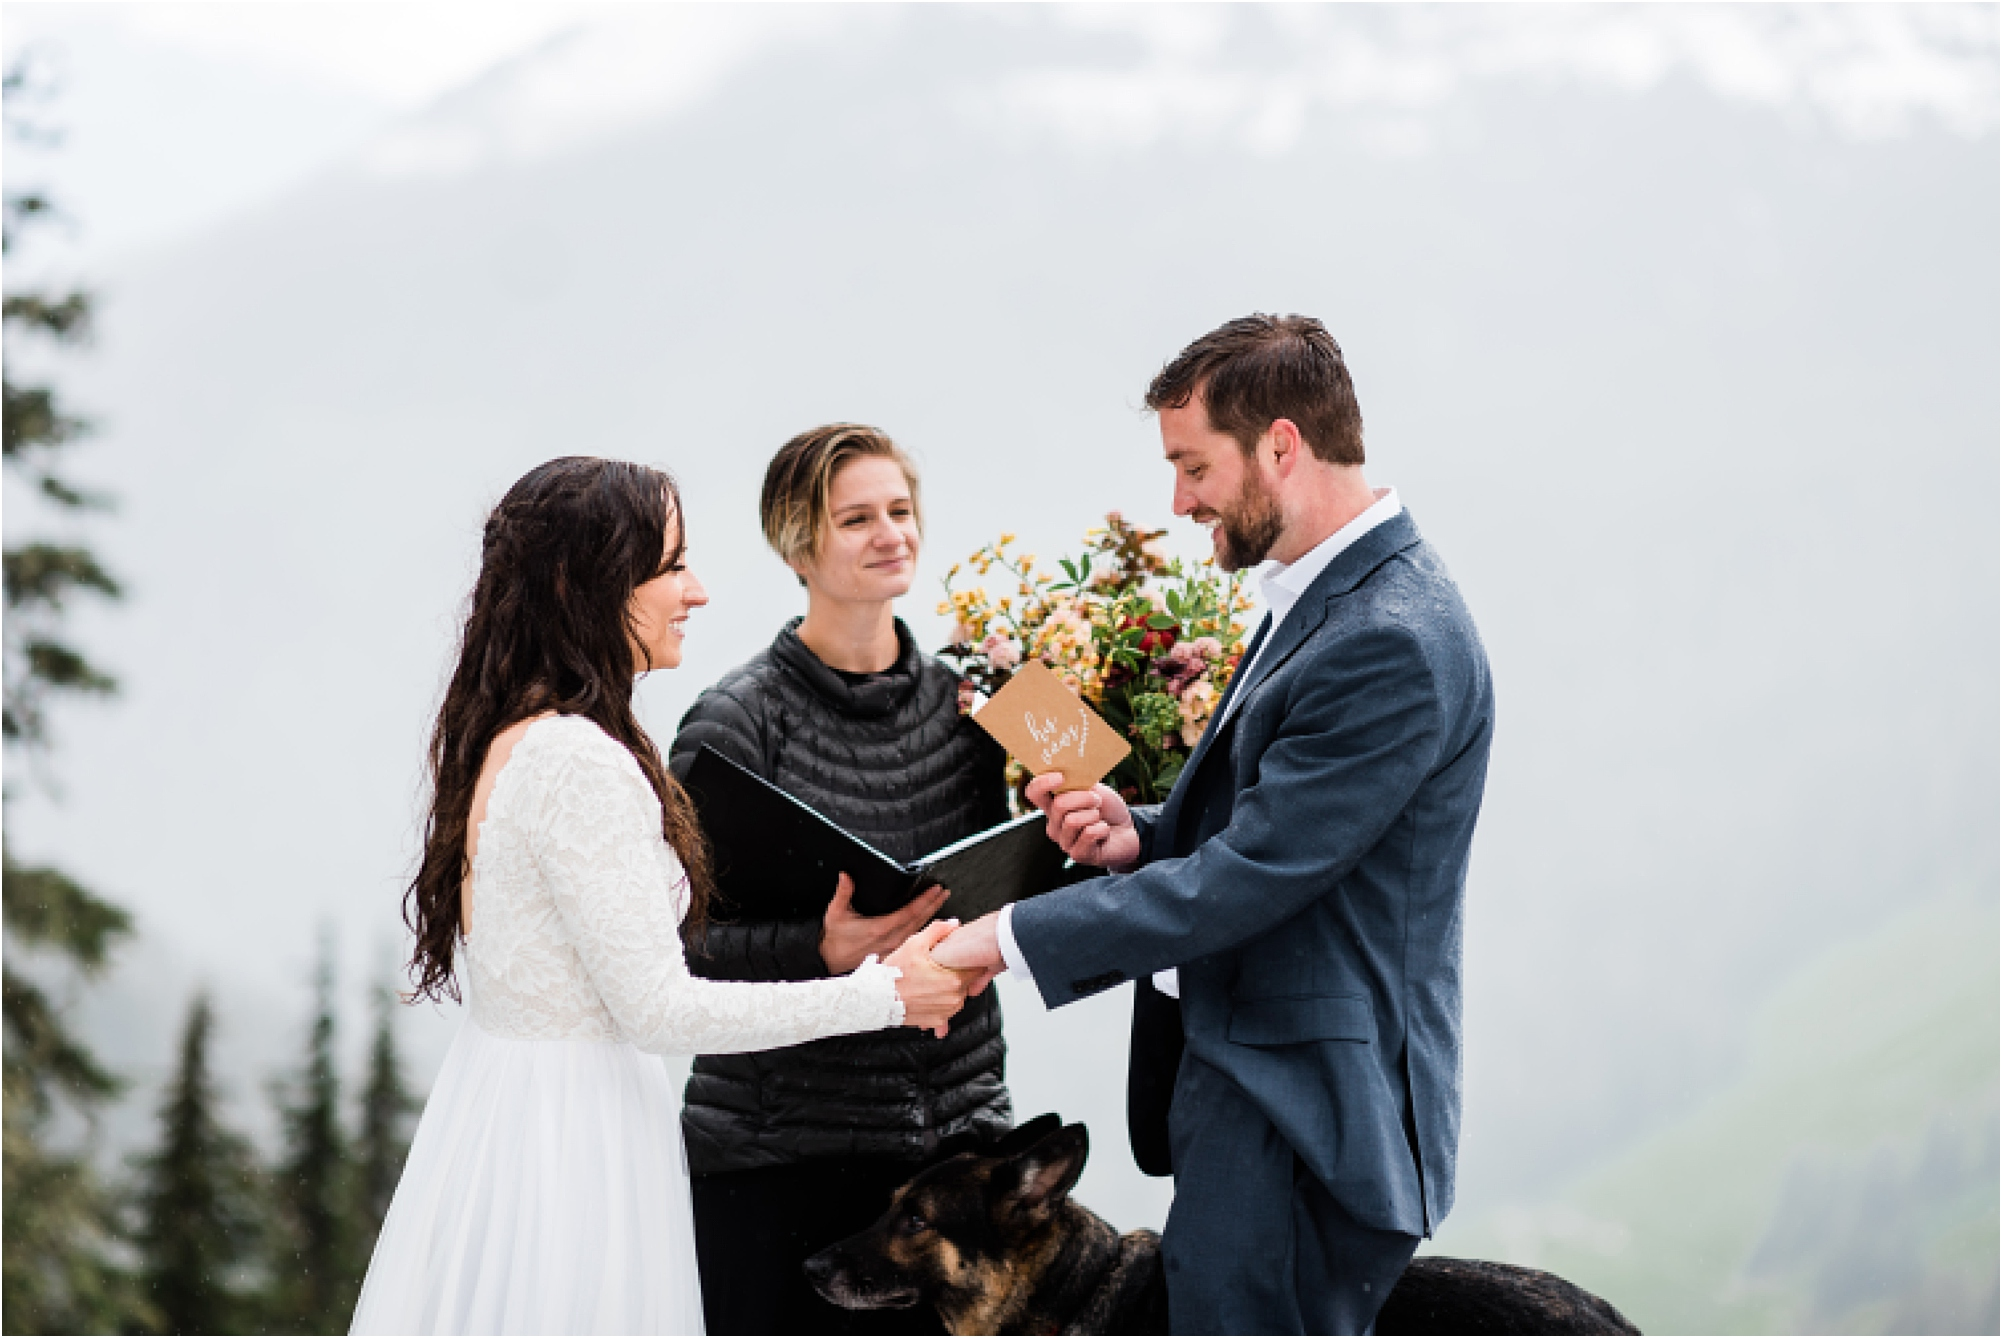 Christina & Tanner exchanging vows during their elopement ceremony in the North Cascades. Image by Forthright Photo, PNW Wedding Photographers.